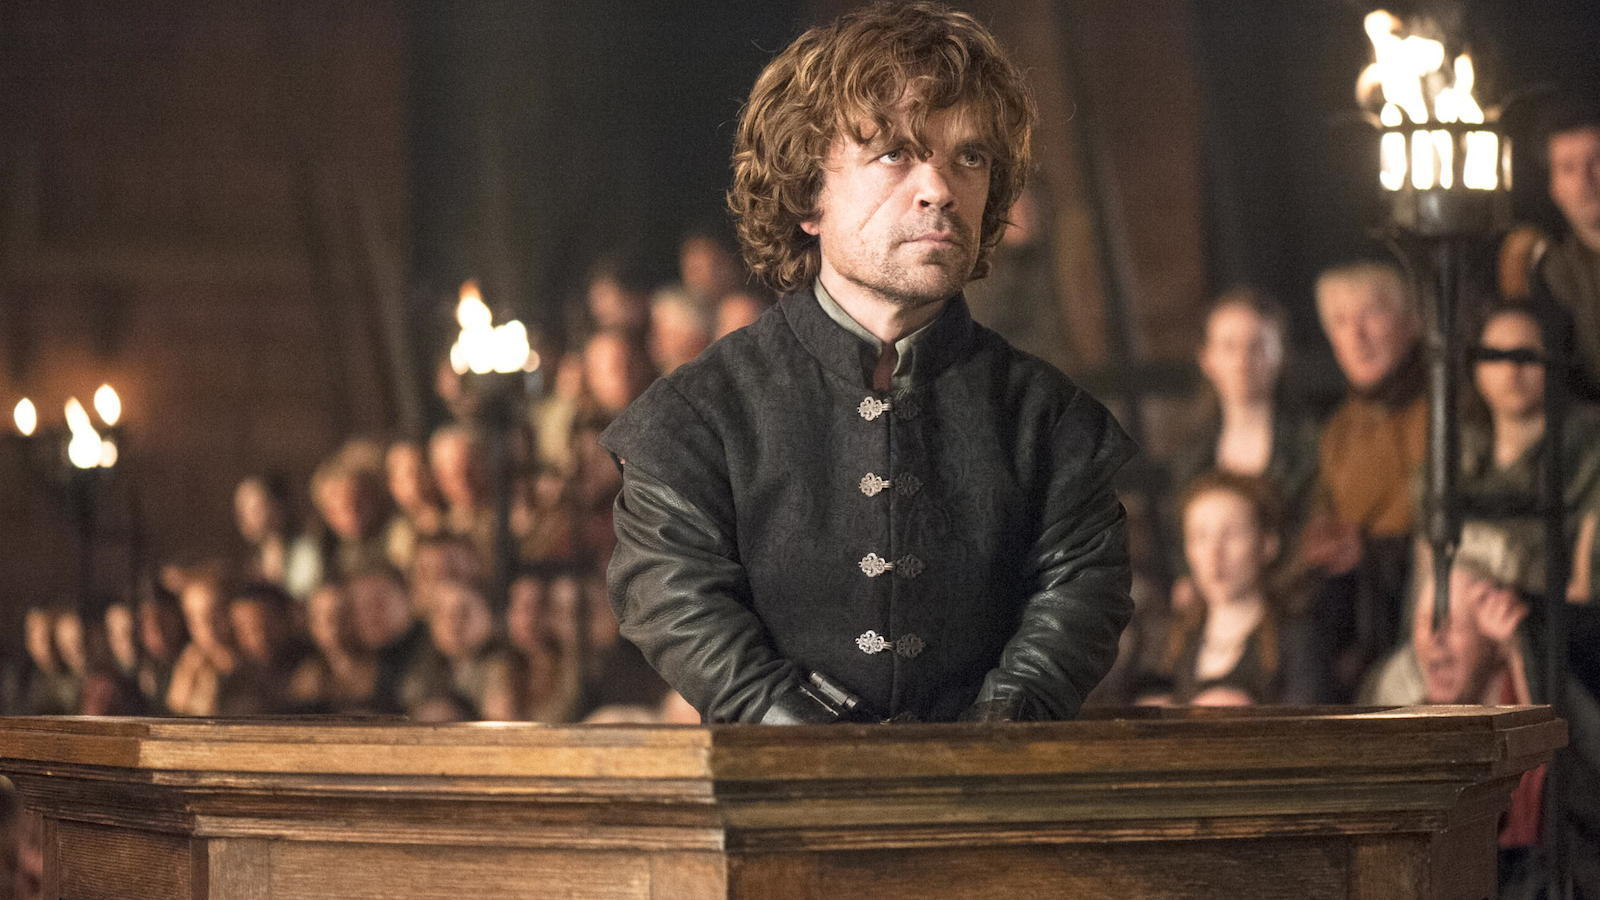 Il trono di spade: Peter Dinklage nell'episodio The Laws of Gods and Men